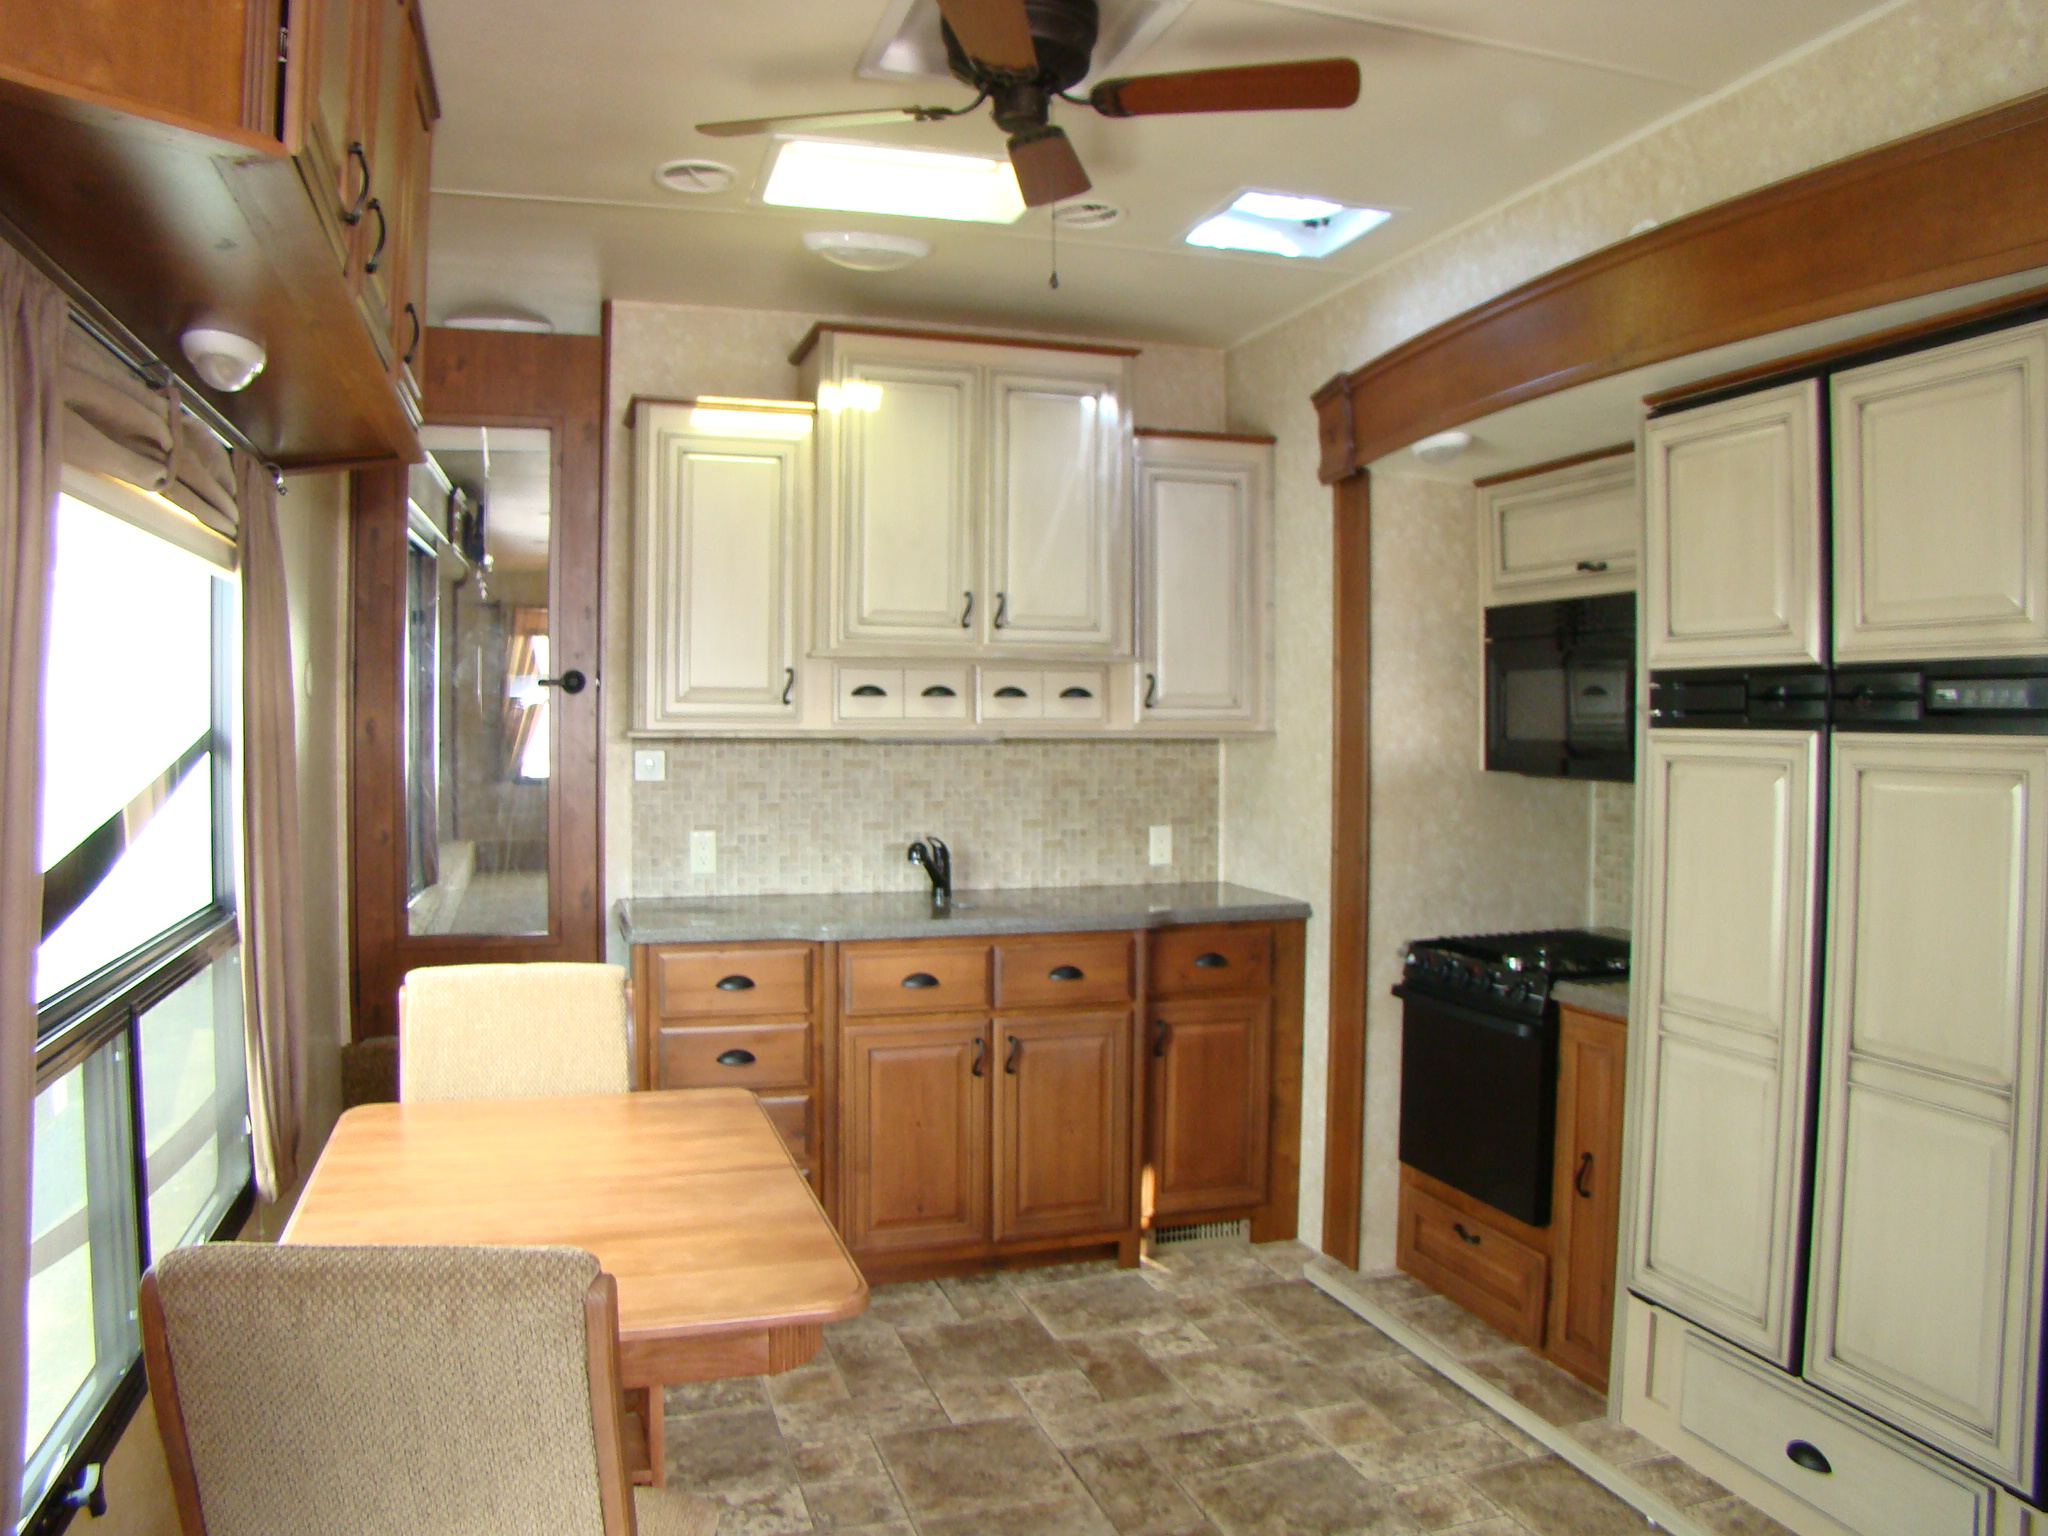 open range camper | RVing is Easy at Lerch RV